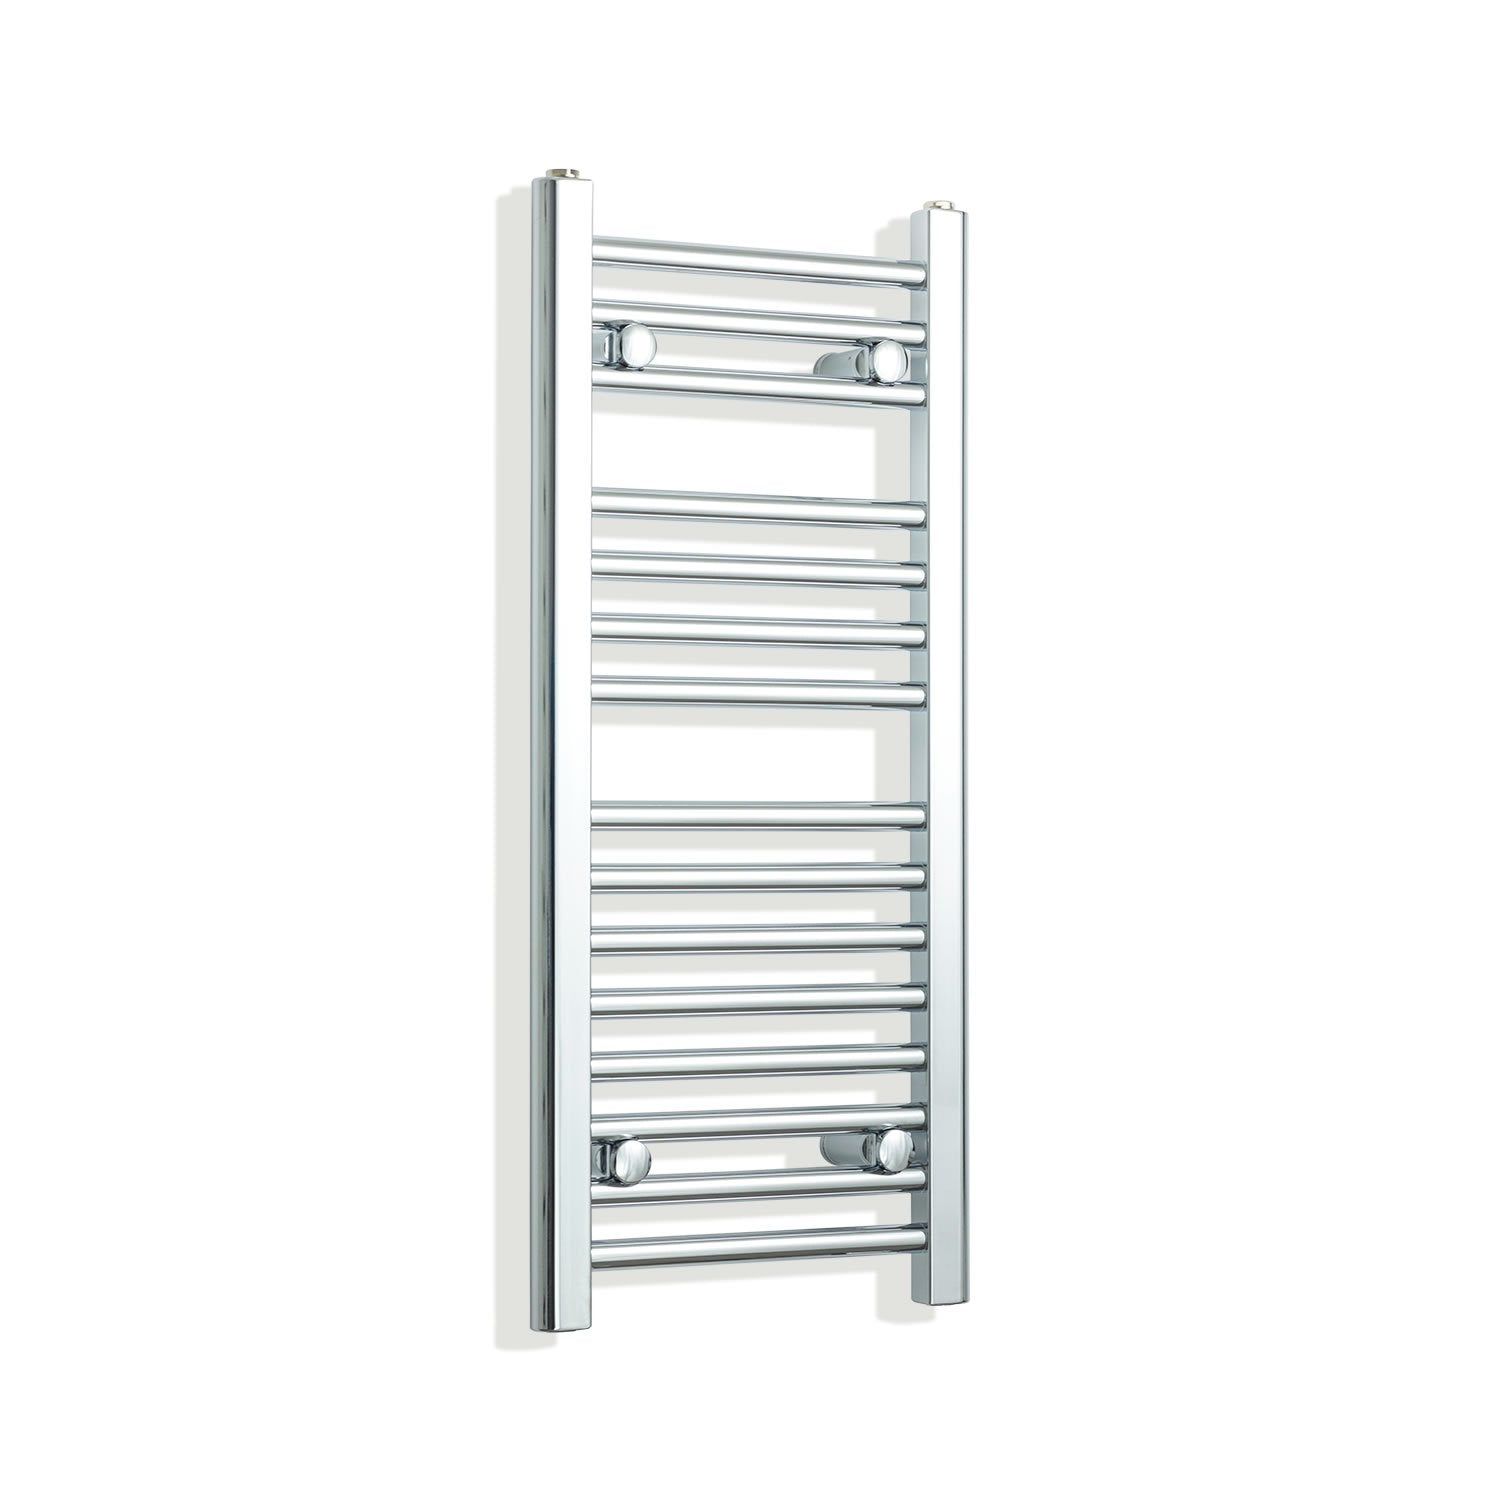 300mm Wide 800mm High Flat Chrome Heated Towel Rail Radiator HTR,Towel Rail Only